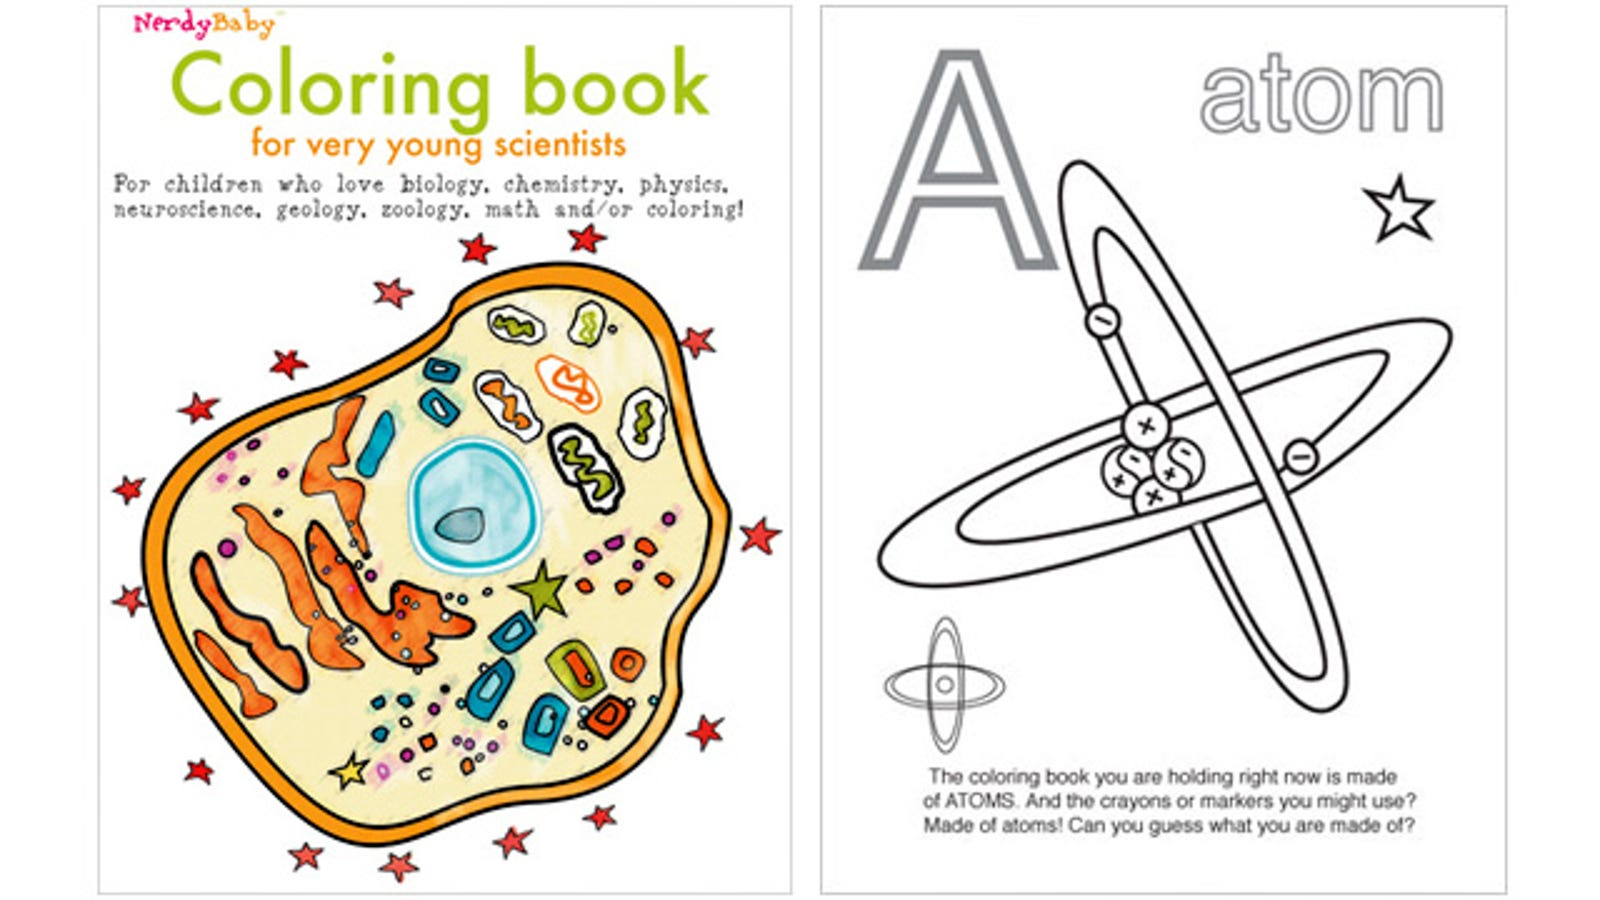 Activity Book For Young Scientists Encourages Coloring ...